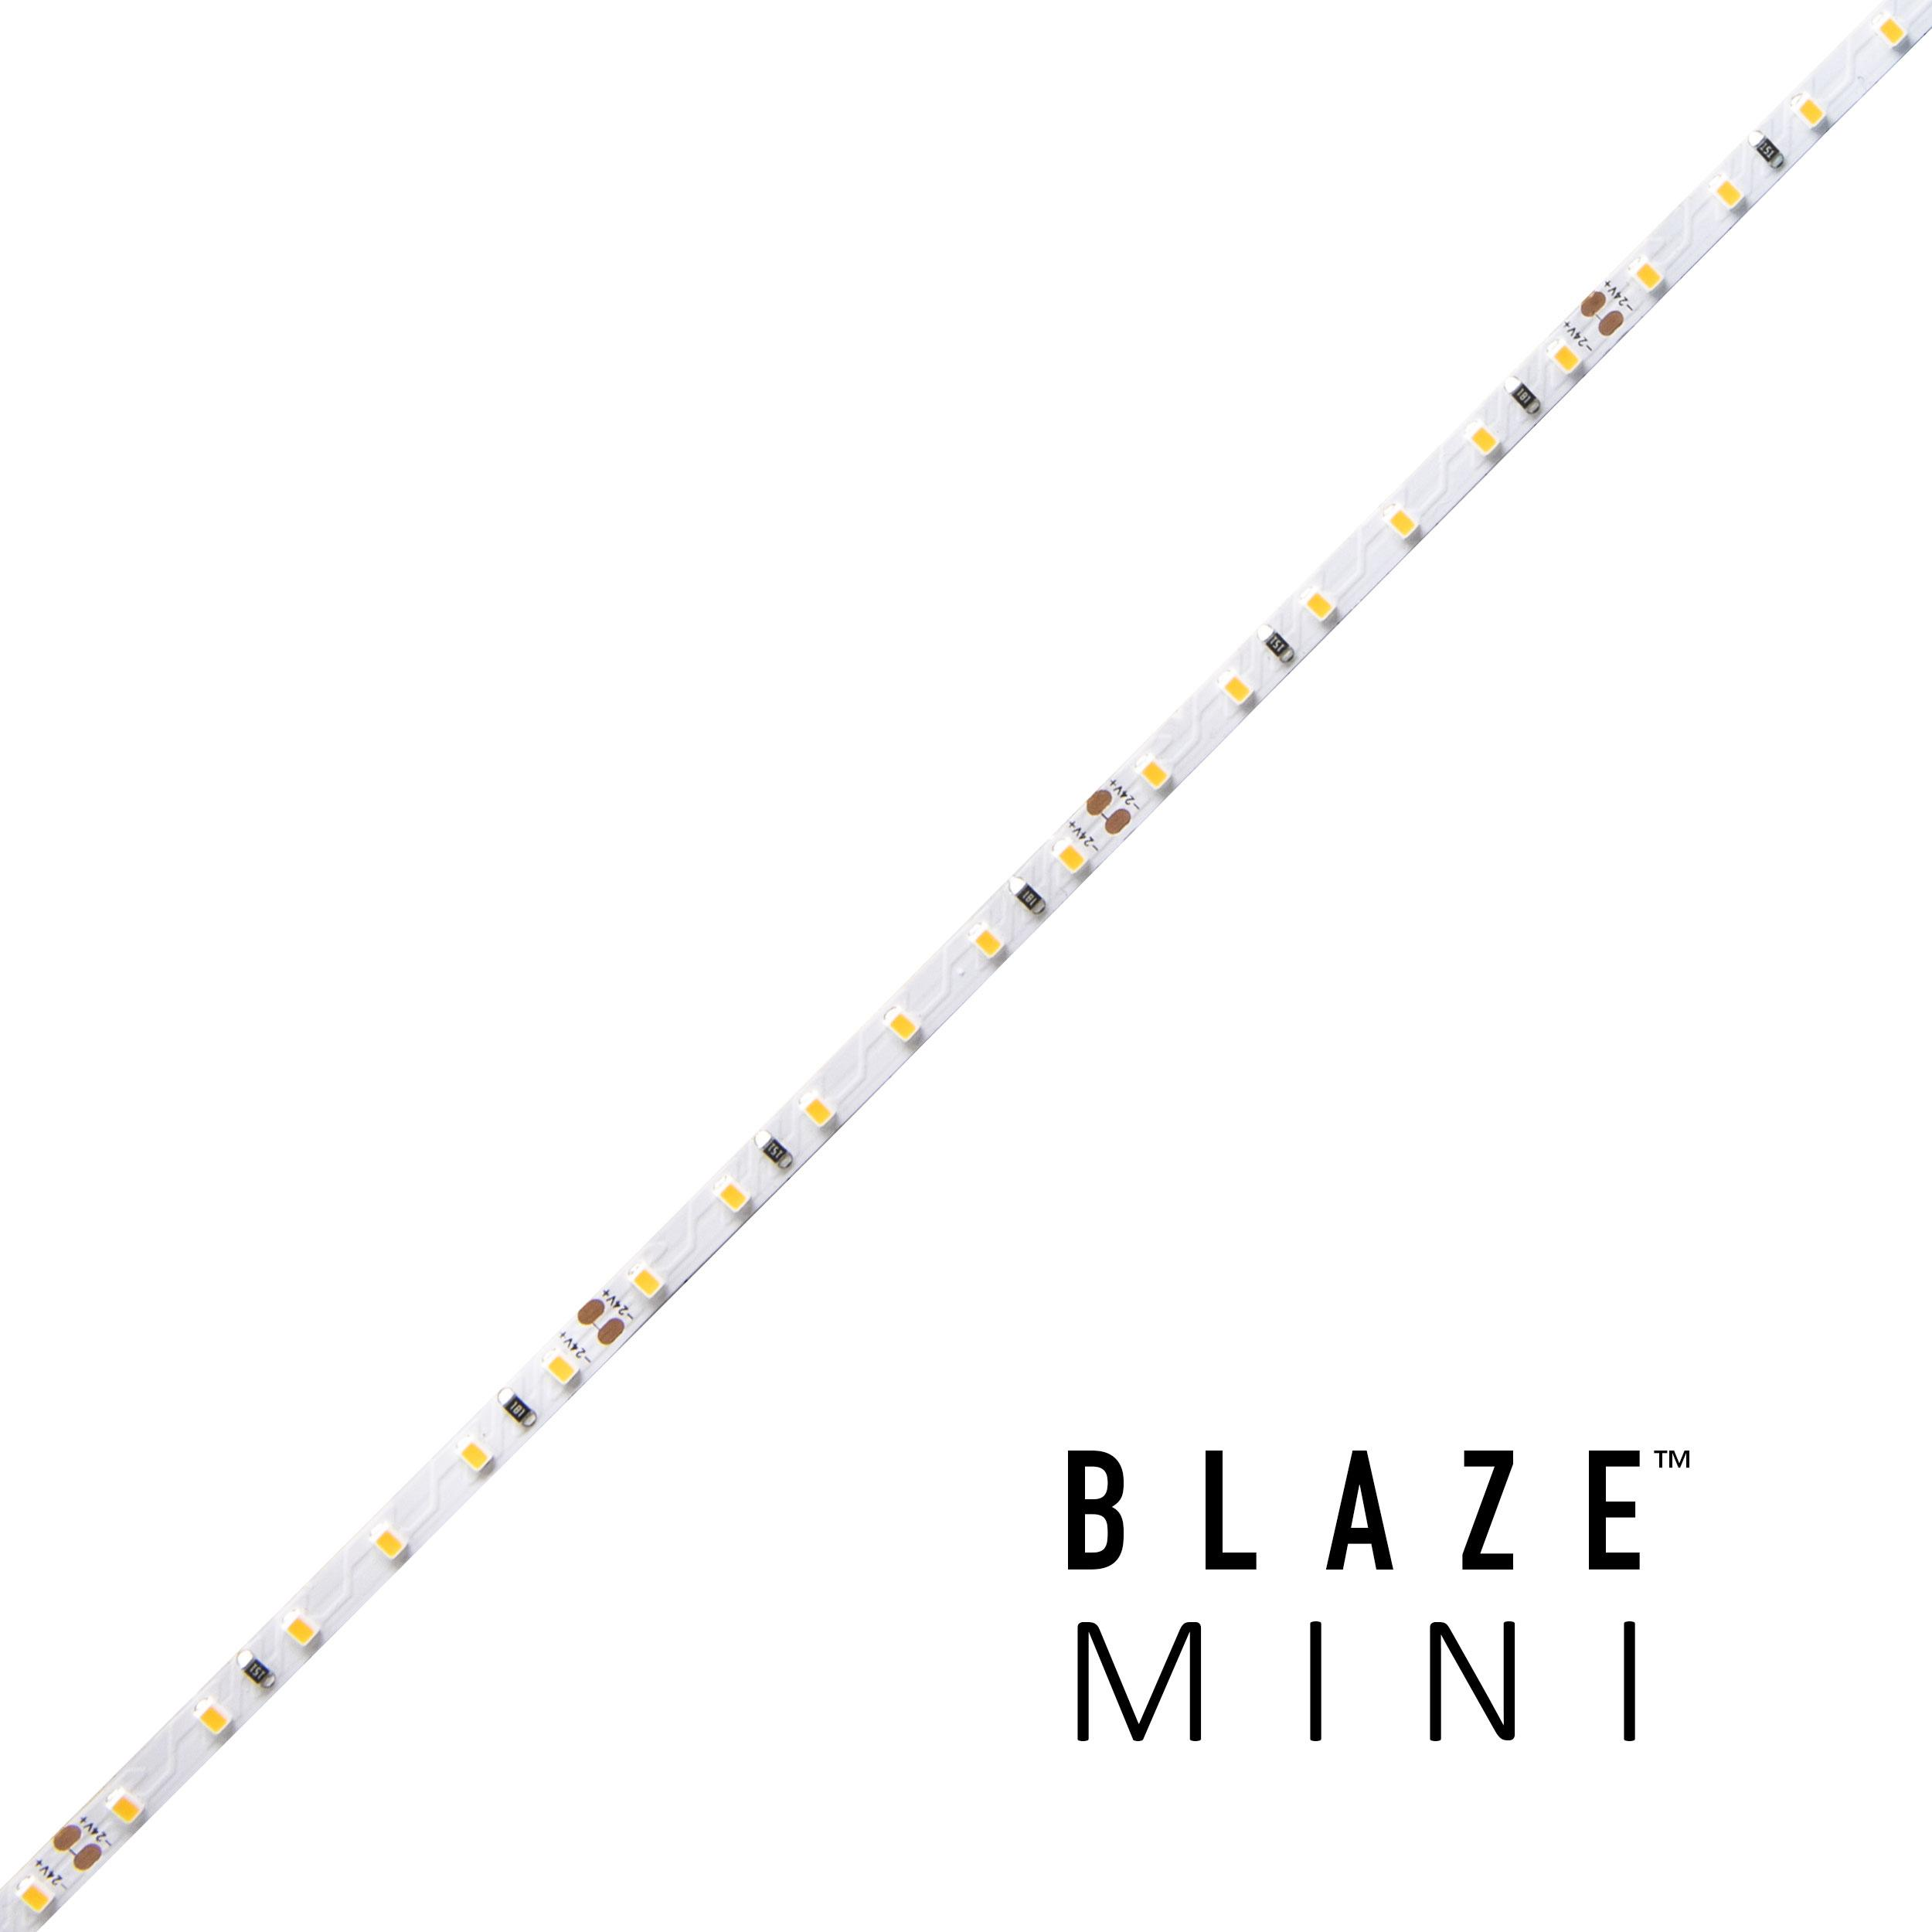 BLAZE™ MINI 4mm LED Tape Light (Tape/Strip Light)